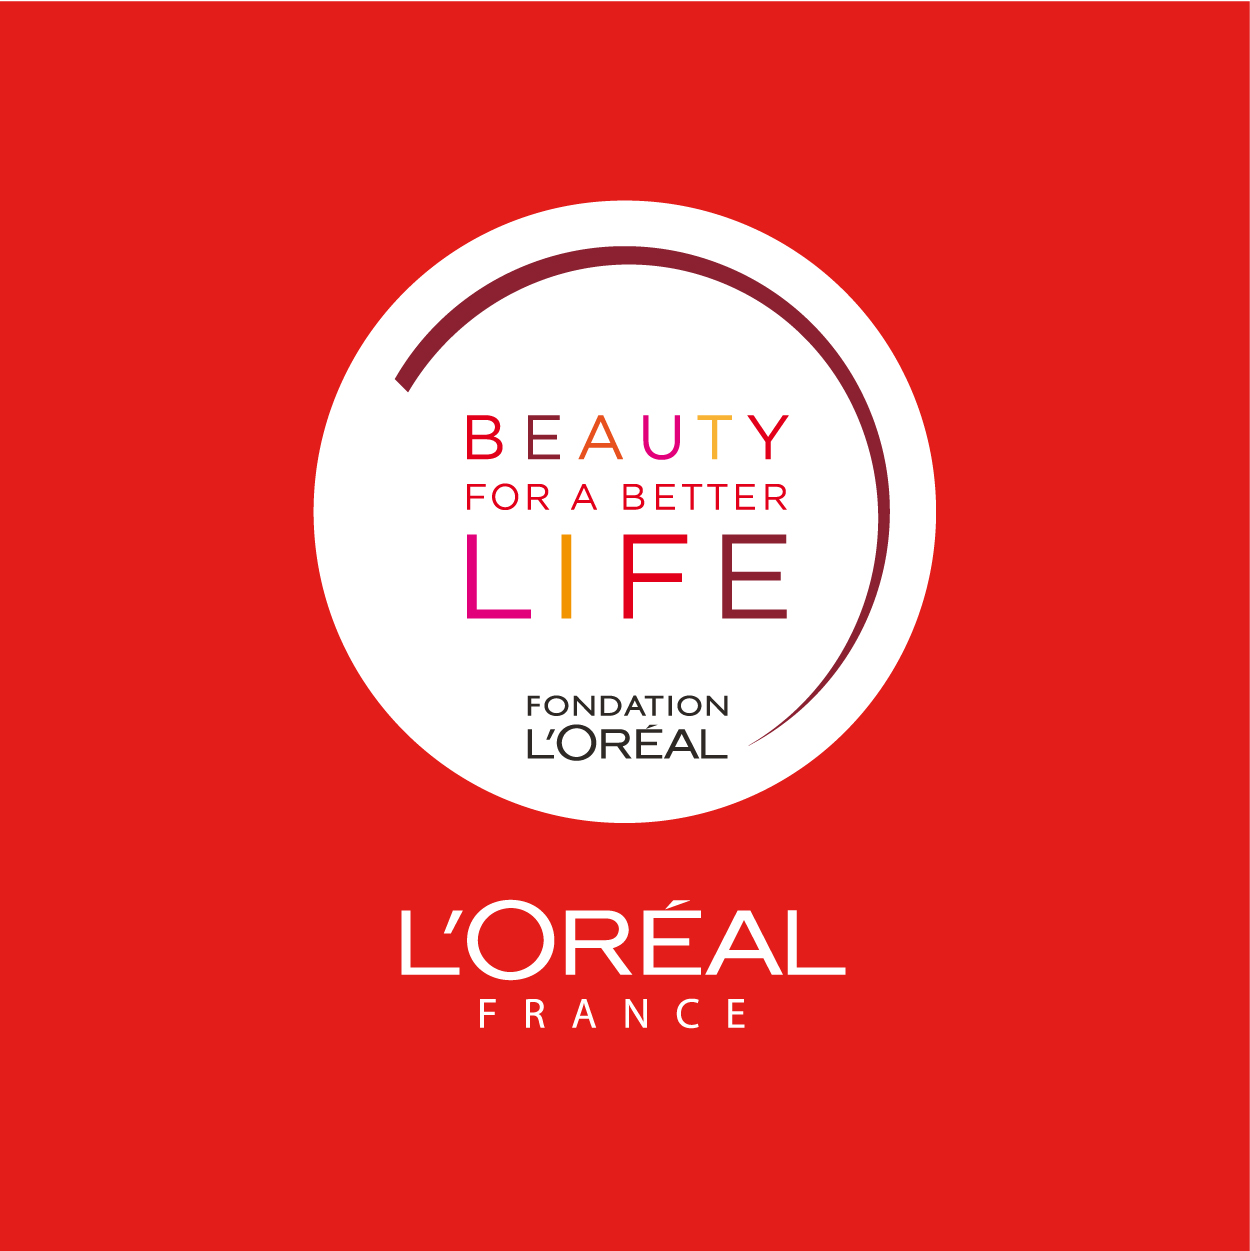 Beauty for a Better life Fondation L'OREAL 1703 Factory